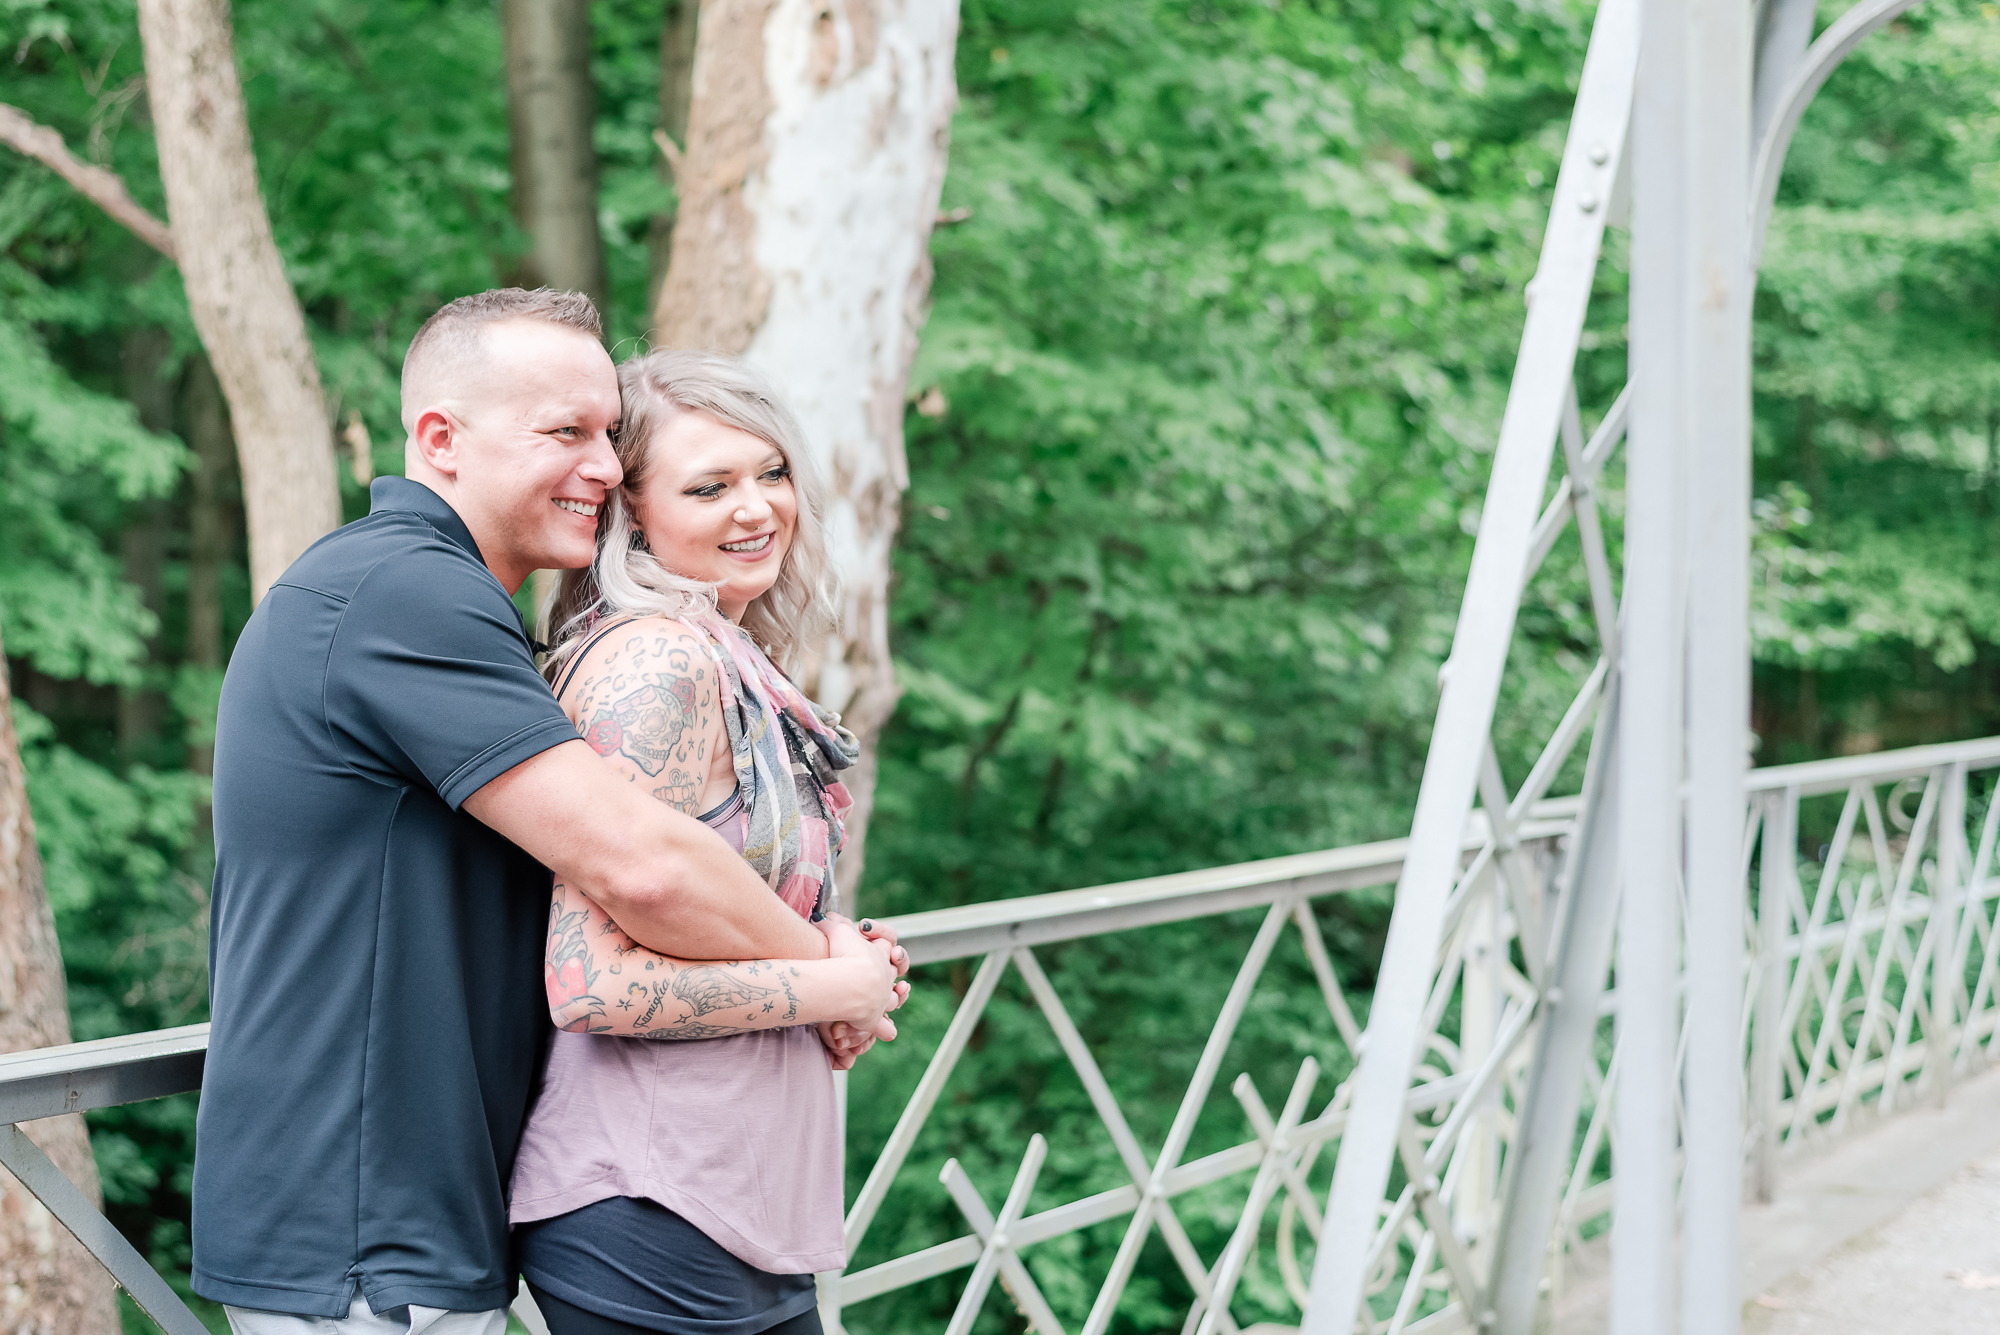 Kristina+Matt_Engagement Session_Mill Creek Park_Youngstown_Ohio-16.jpg